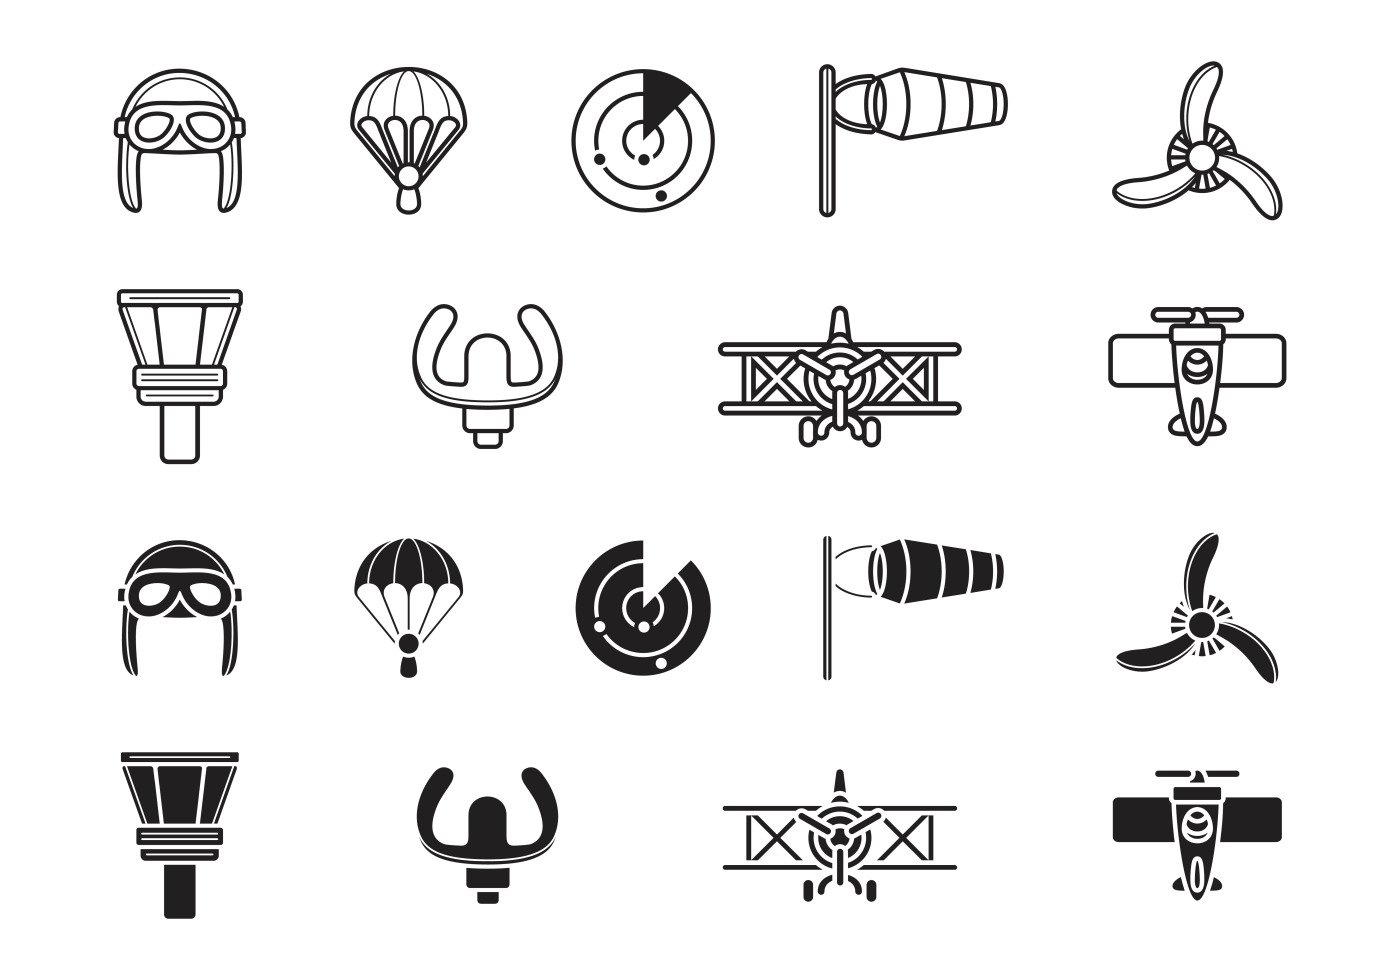 Biplane Aviation Icons Download Free Vector Art Stock